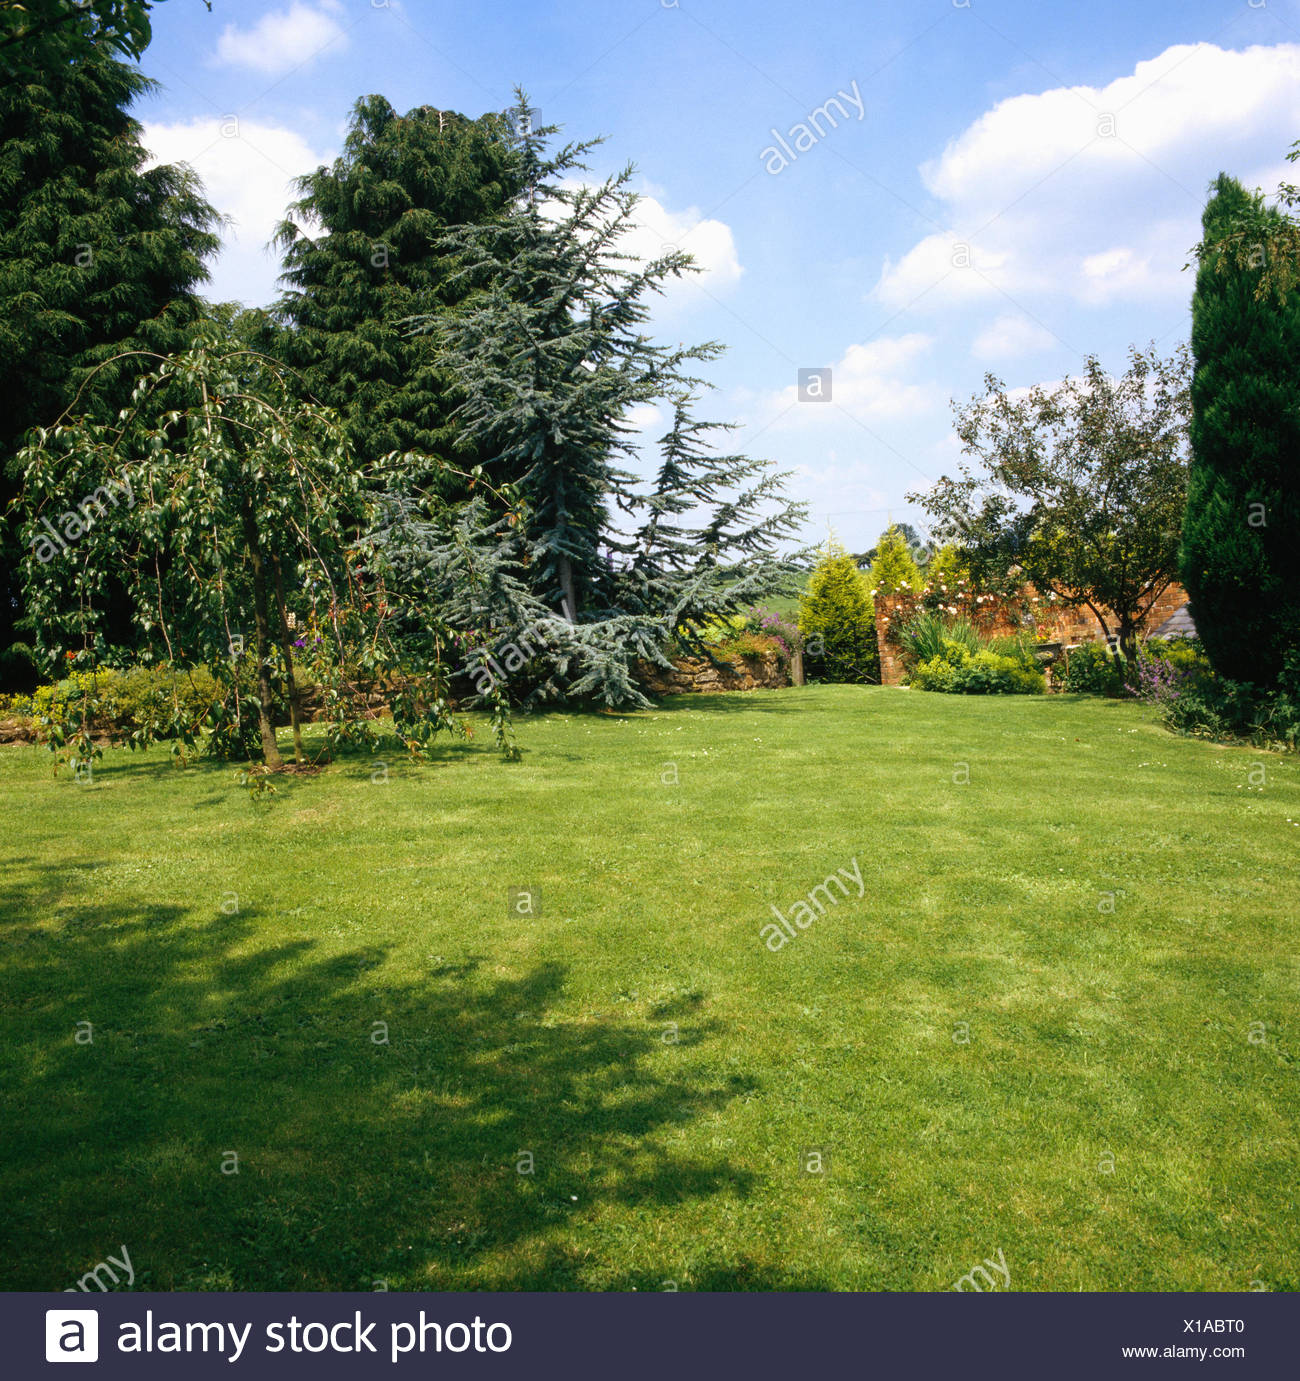 Small weeping pear on lawn in large country garden with spruce and conifers - Stock Image